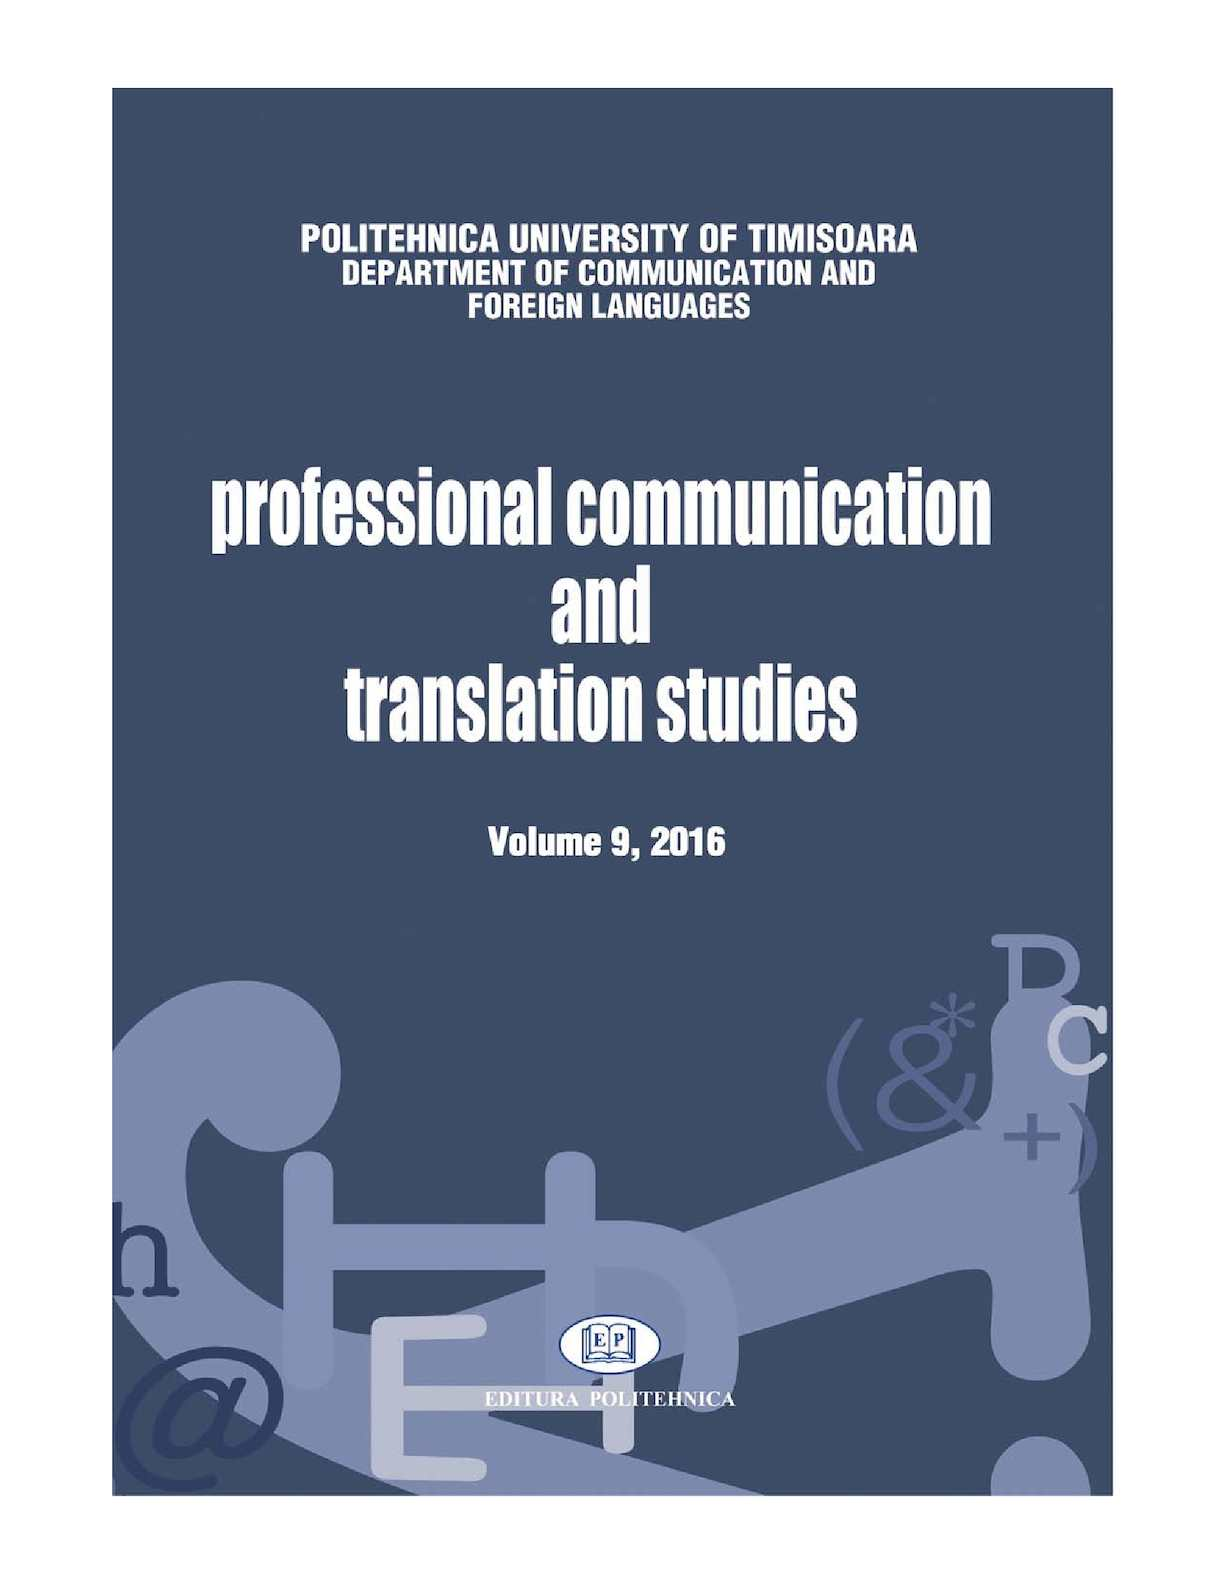 Outdoor Teppich Pro Idee Calaméo Professional Communication And Translation Studies 9 2016